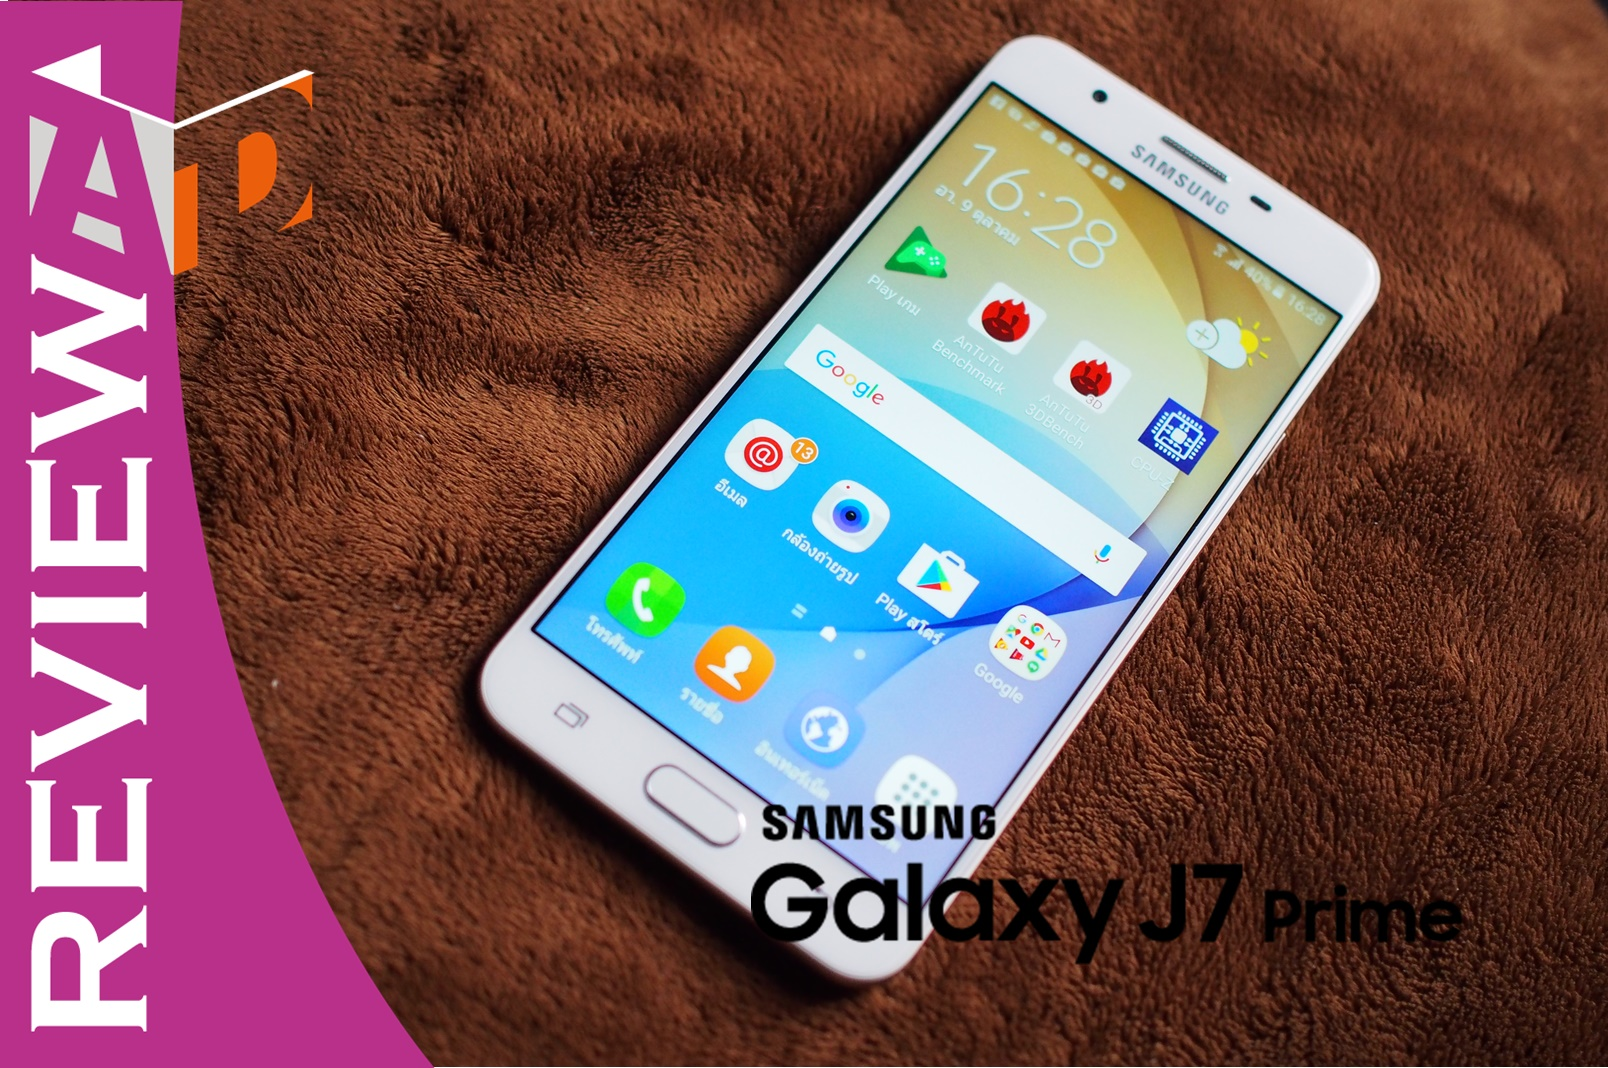 samsung-galaxy-j7-prime-appdisqus-review